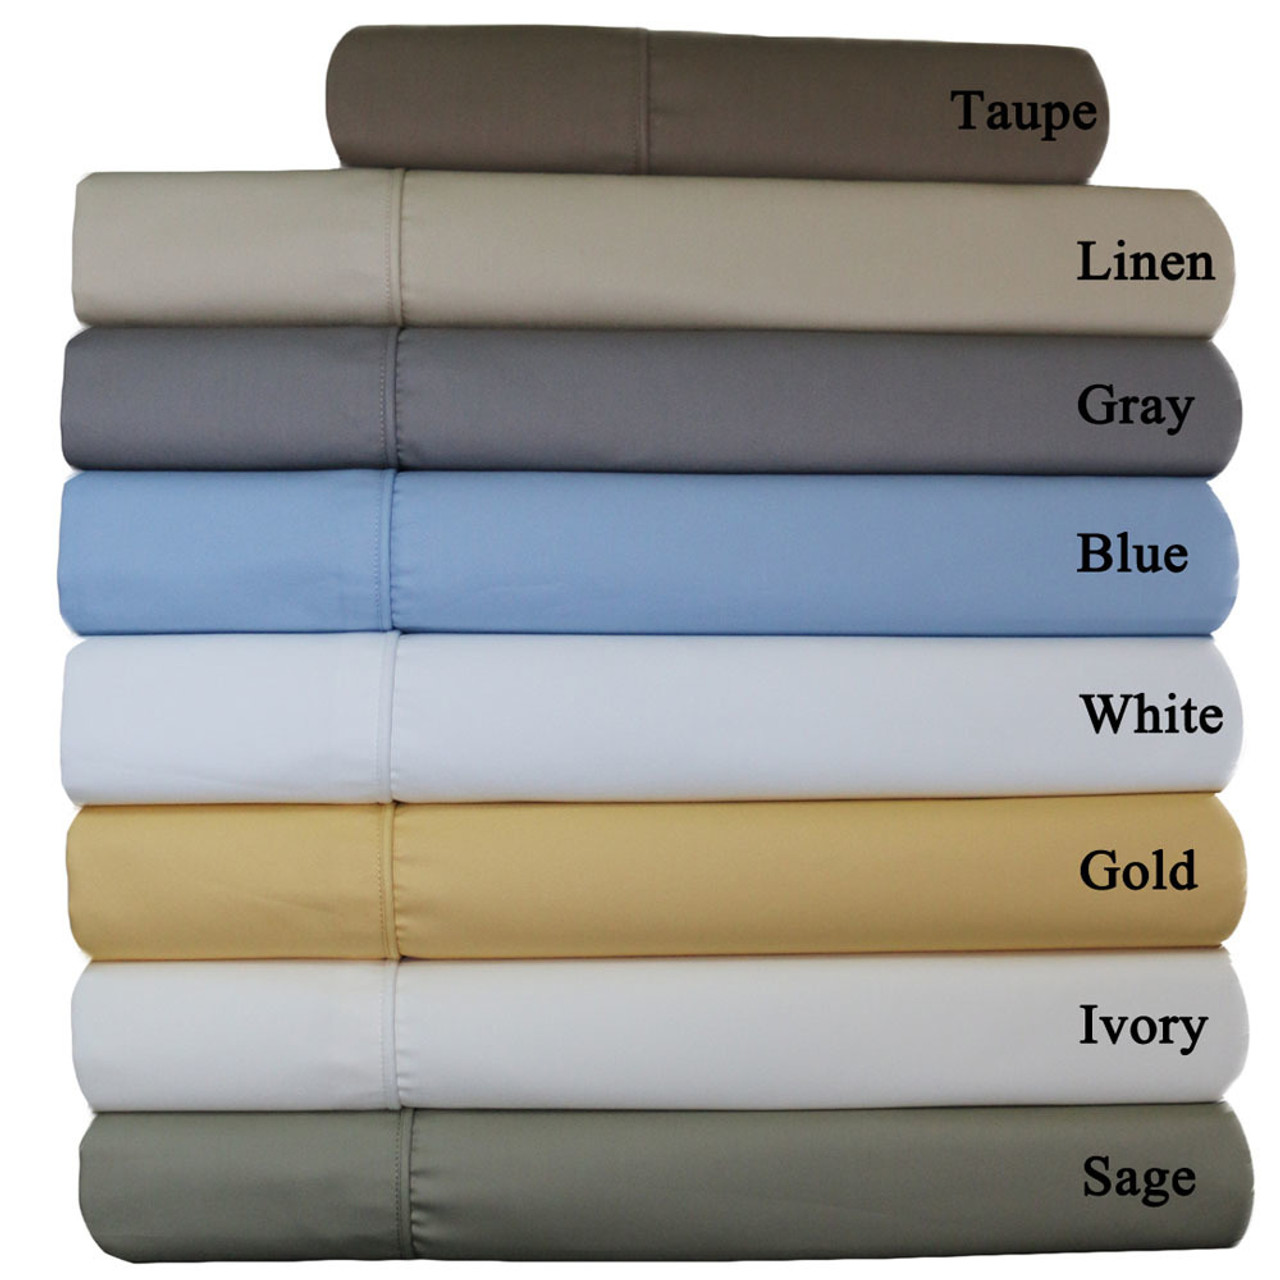 Dual king sheets for adjustable beds : Split king sheet sets dual adjustable bed sheets